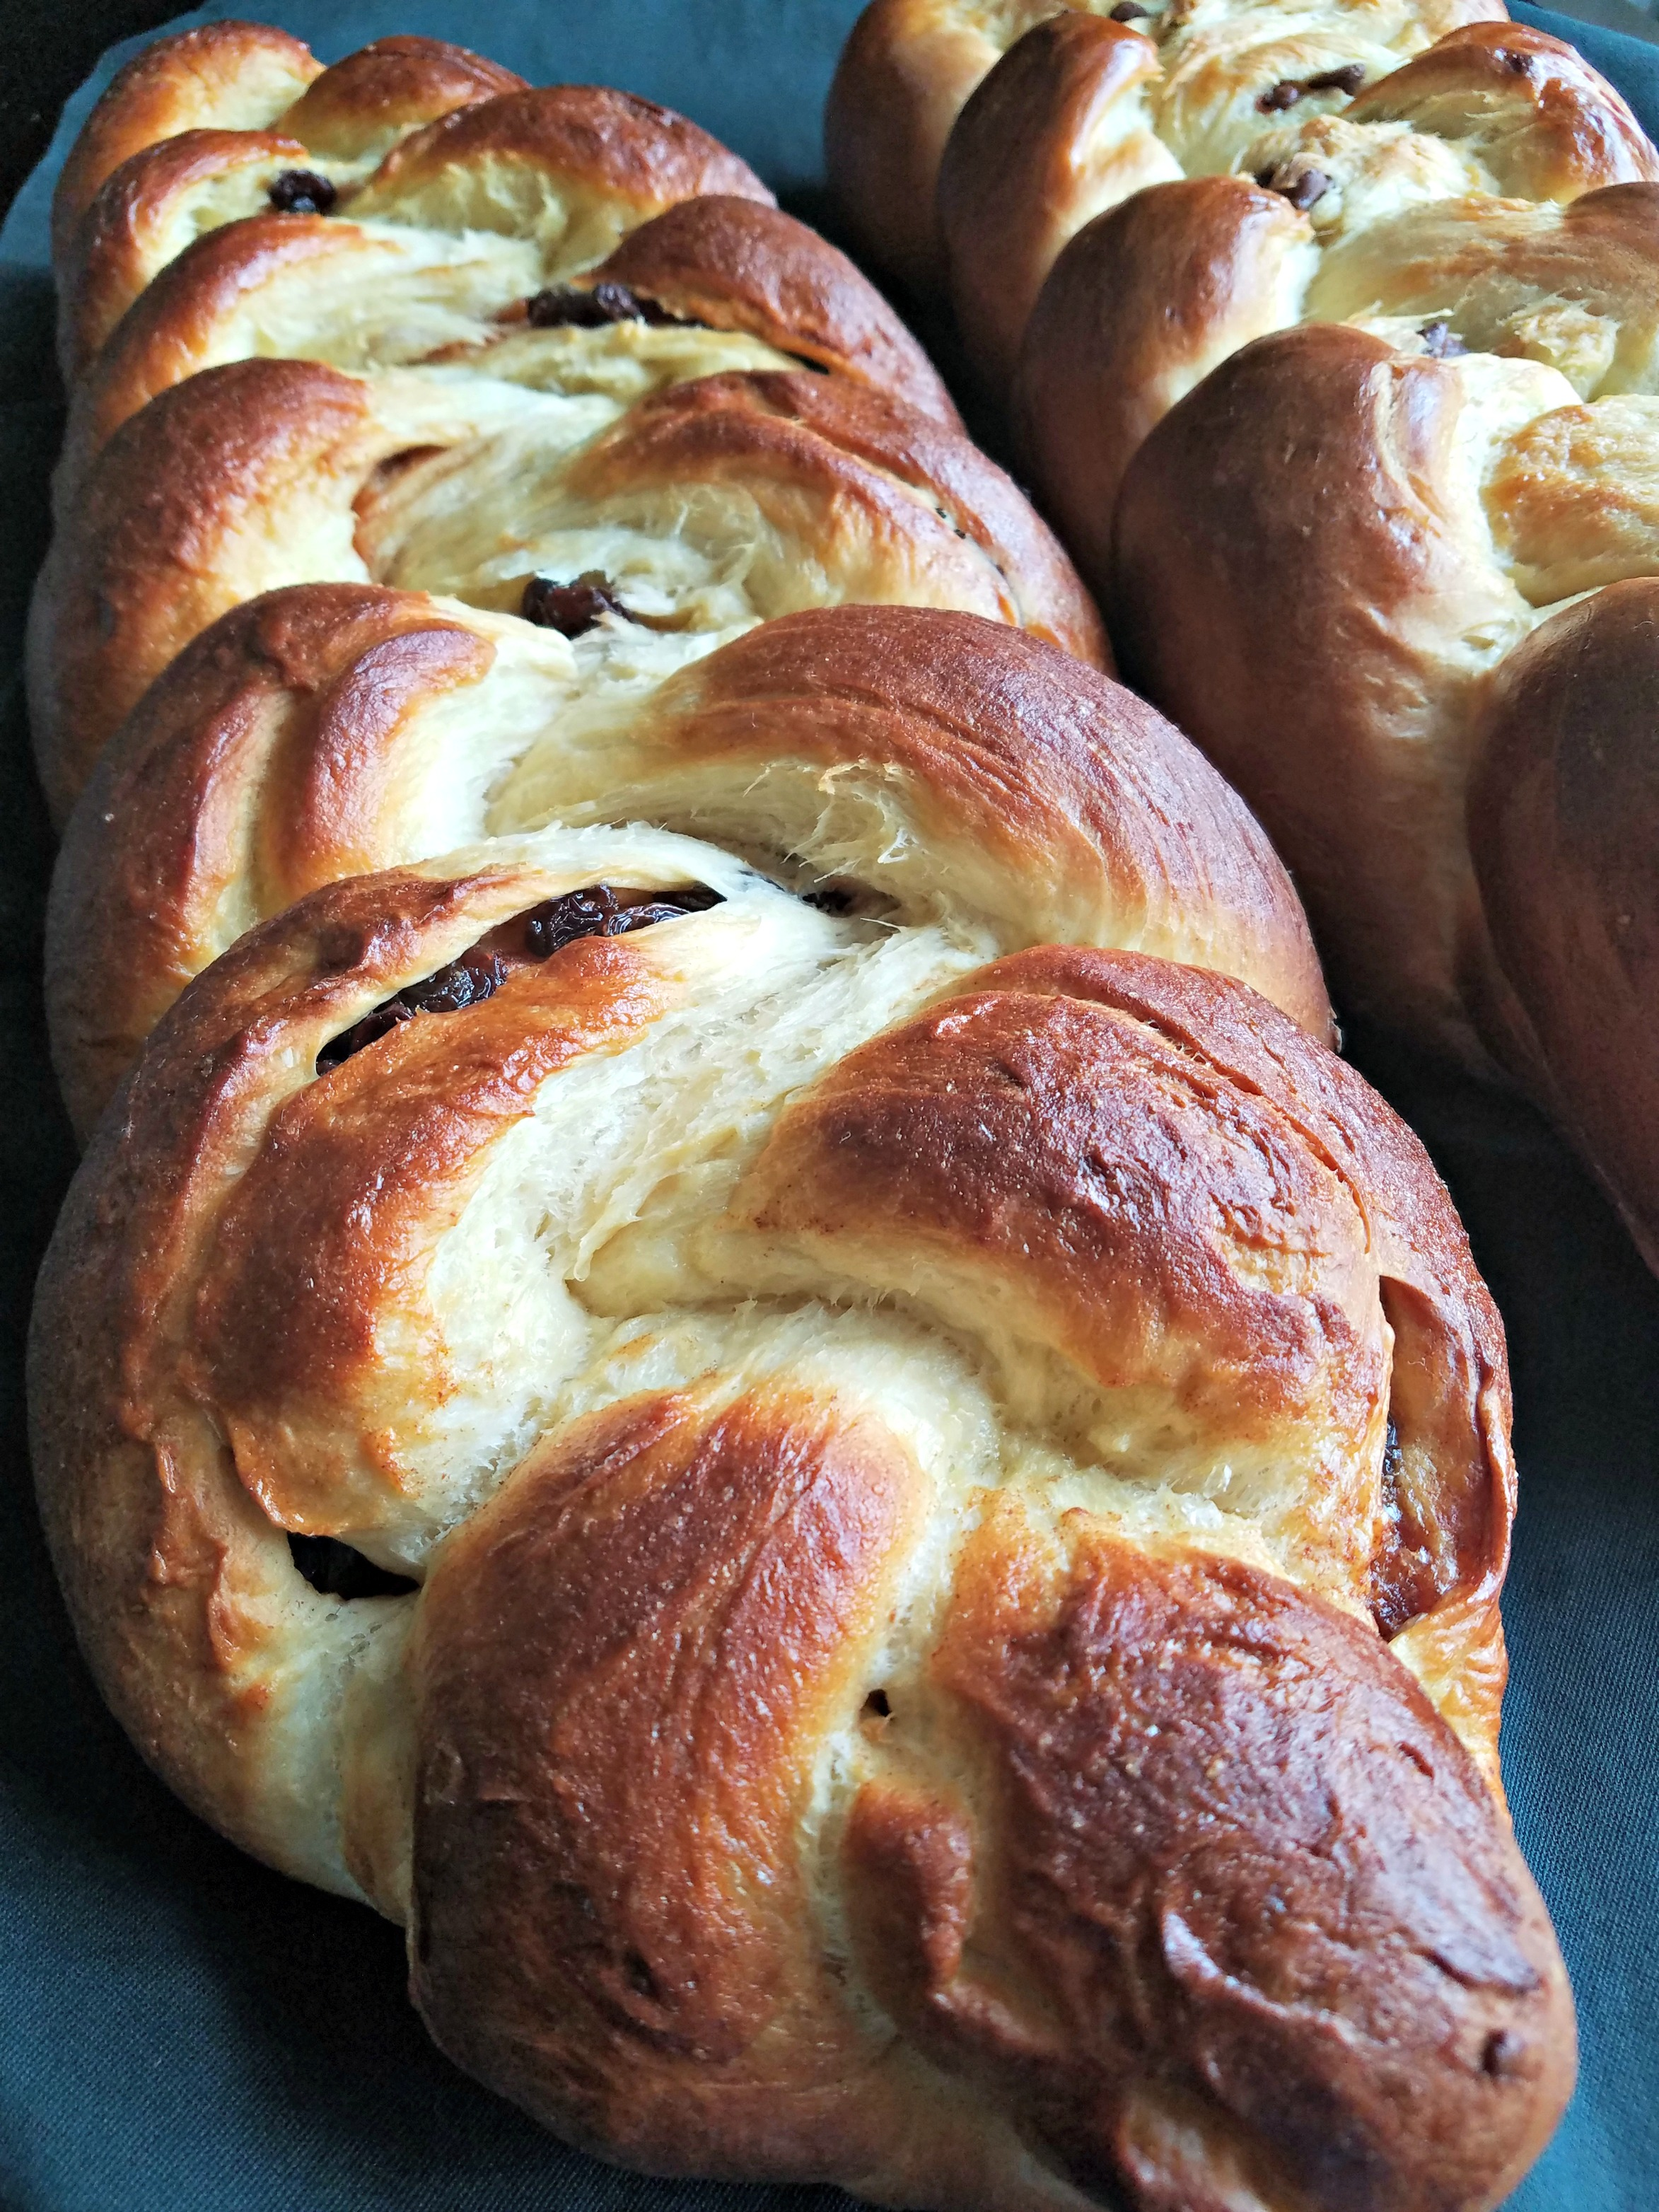 New Friends A Kosher Kitchen And A Chelluva Challah Bread Recipe Meemaw Eats